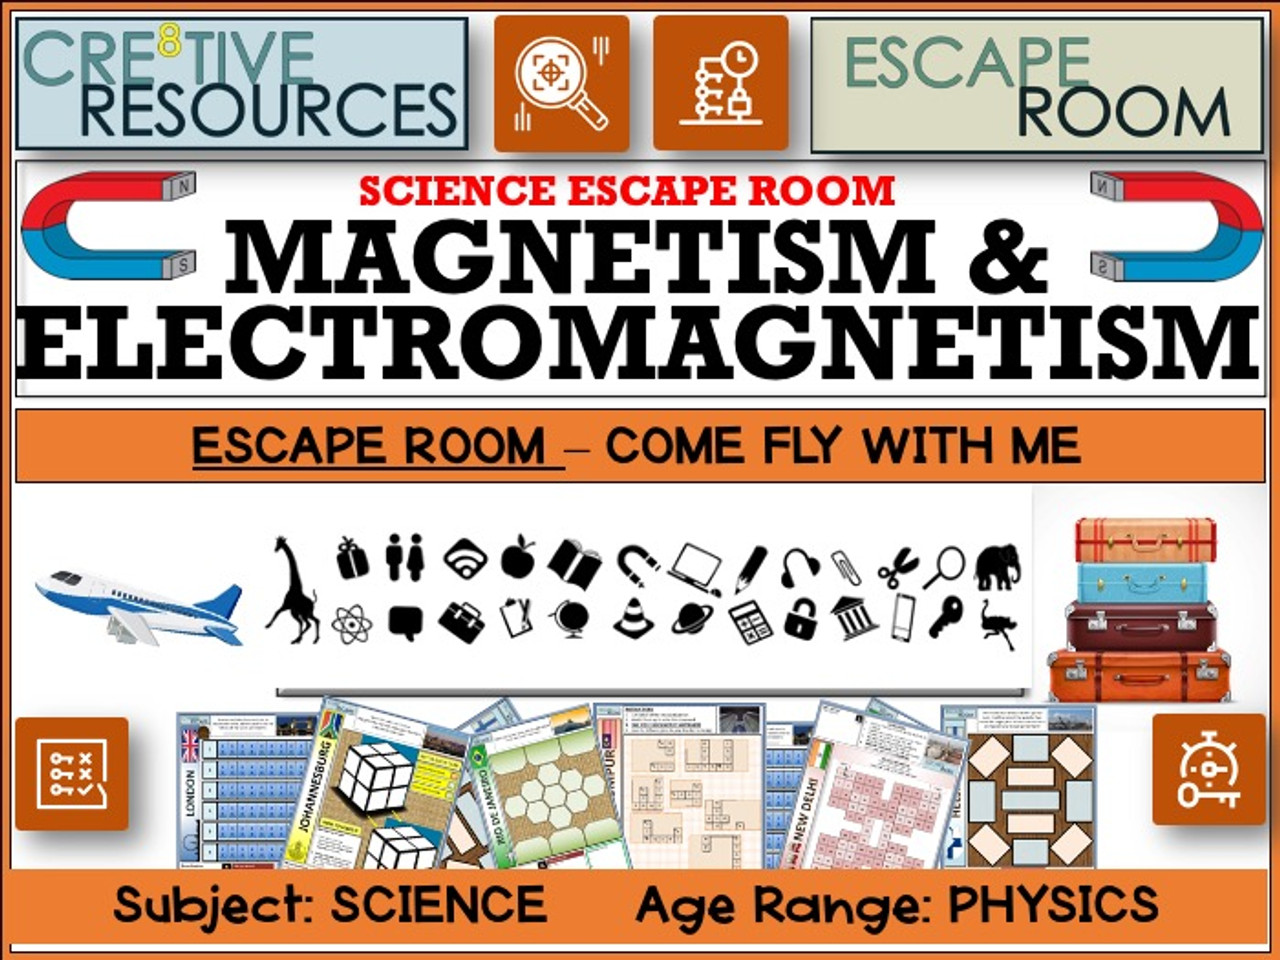 Magnetism and Electro Magnetism